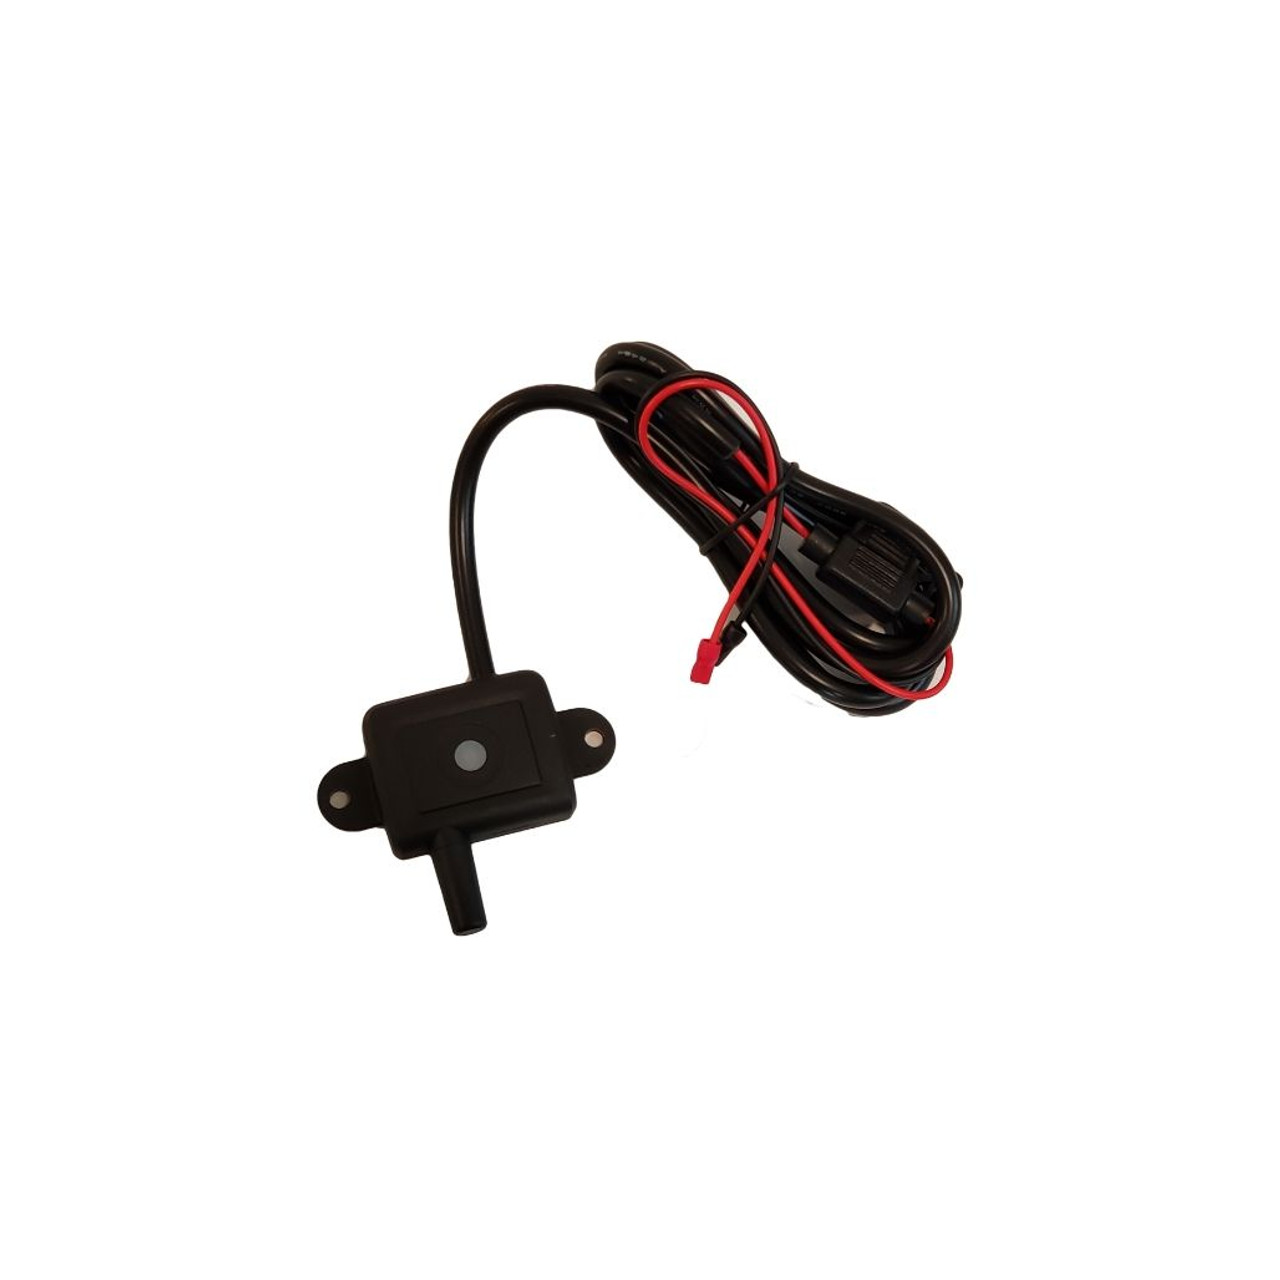 TST 507 TPMS with 2 CAP Sensors and Repeater